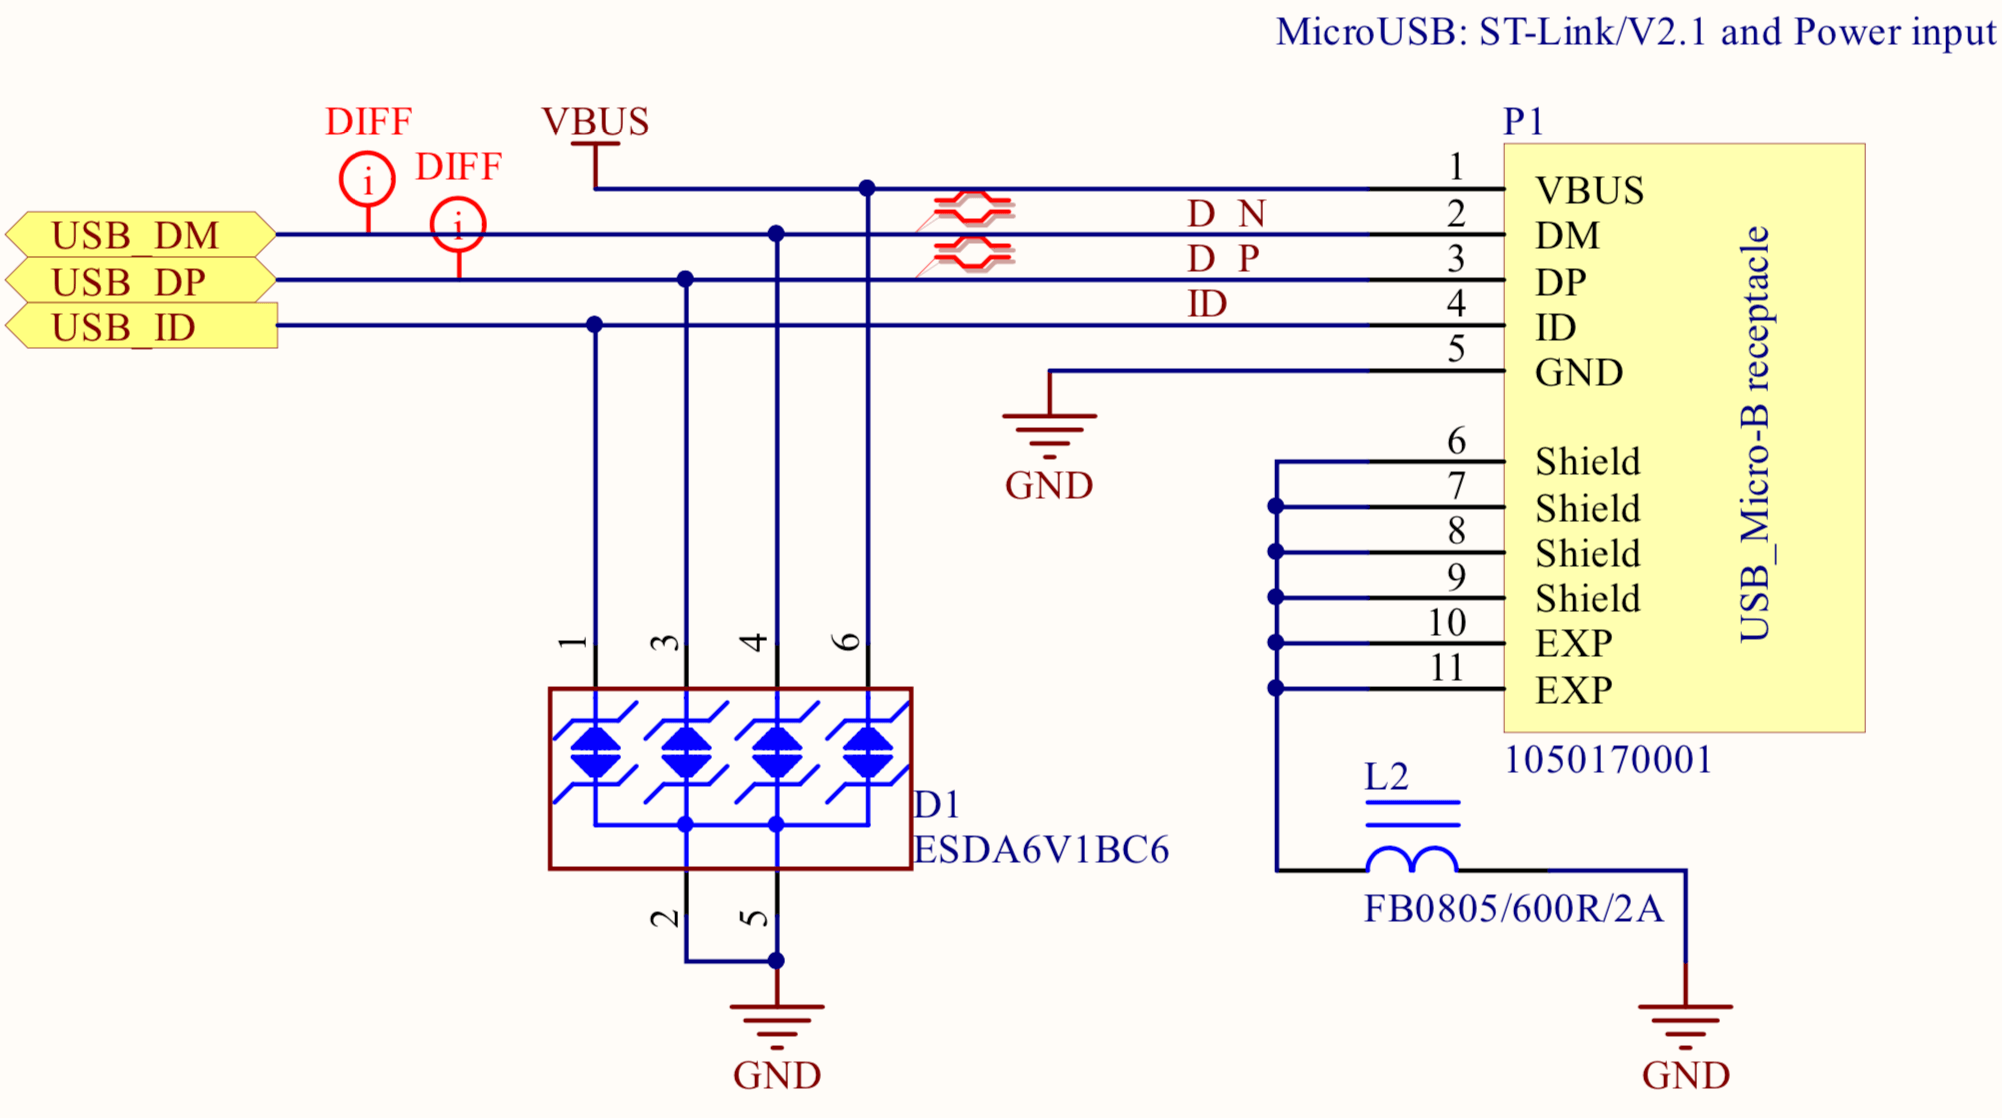 Schematics - Makerfactory Doentation on resettable fuse, variable inductor schematic symbol, electronic component schematic symbol, optoelectronics schematic symbol, solar cell schematic symbol, screw schematic symbol, capacitor schematic symbol, surge arrestor, diac schematic symbol, potentiometer schematic symbol, pin schematic symbol, ferrite core schematic symbol, gas filled tube, heatsink schematic symbol, or gate schematic symbol, electronic color code, load cell schematic symbol, surge suppressor schematic symbol, thermistor schematic symbol, electronic component, reactor schematic symbol, cable schematic symbol, crystal oscillator, thermocouple schematic symbol, inrush current limiter, shield schematic symbol, washer schematic symbol,